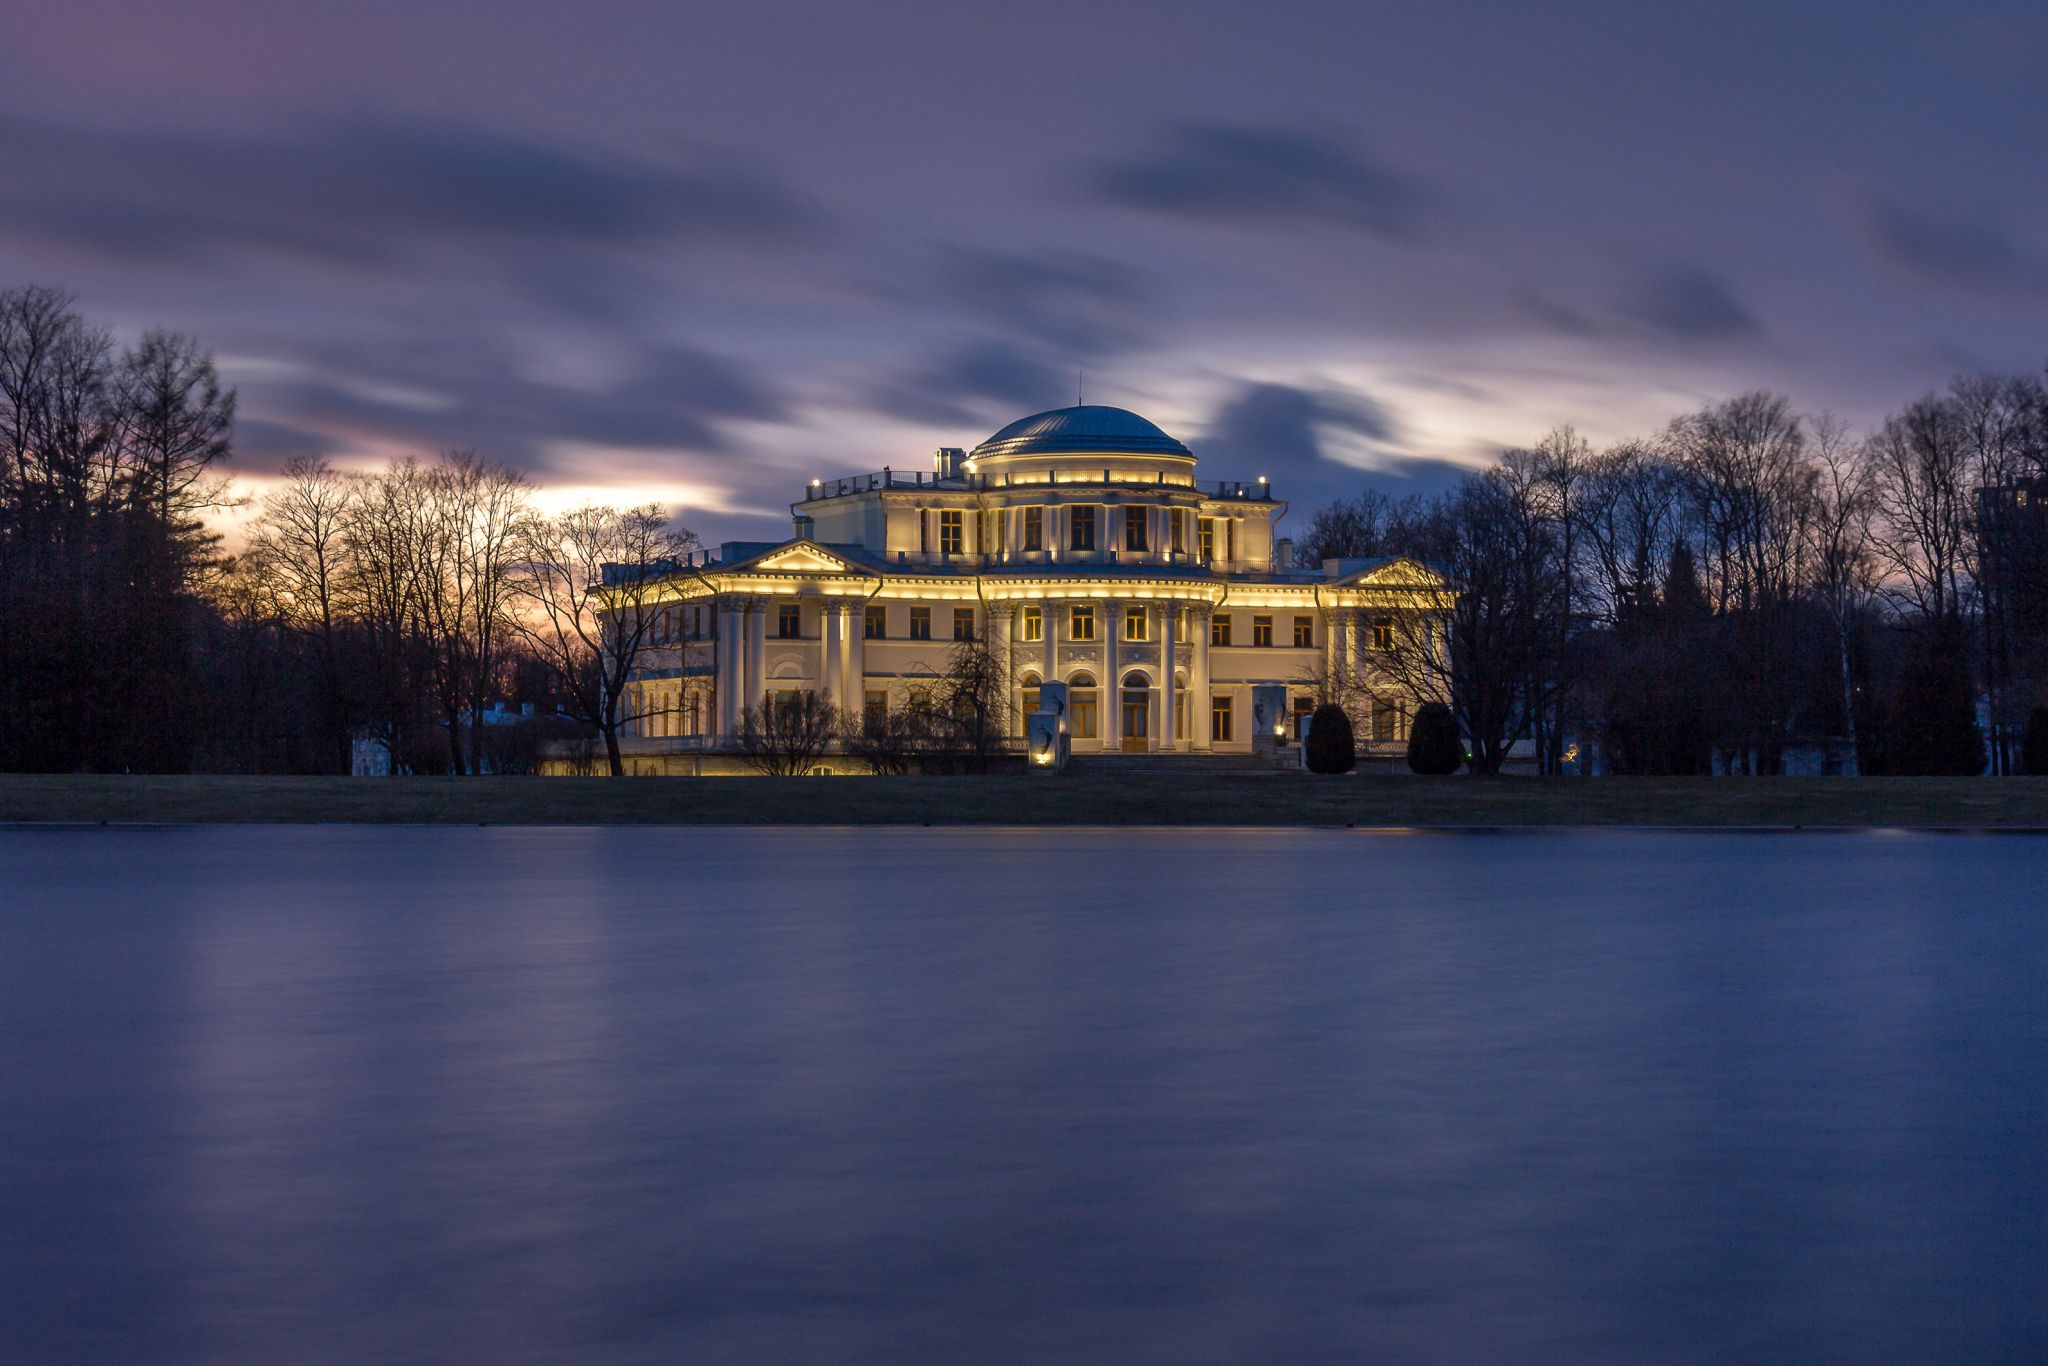 Elagin Palace in St. Petersburg at the Neva River Delta, Russian Federation